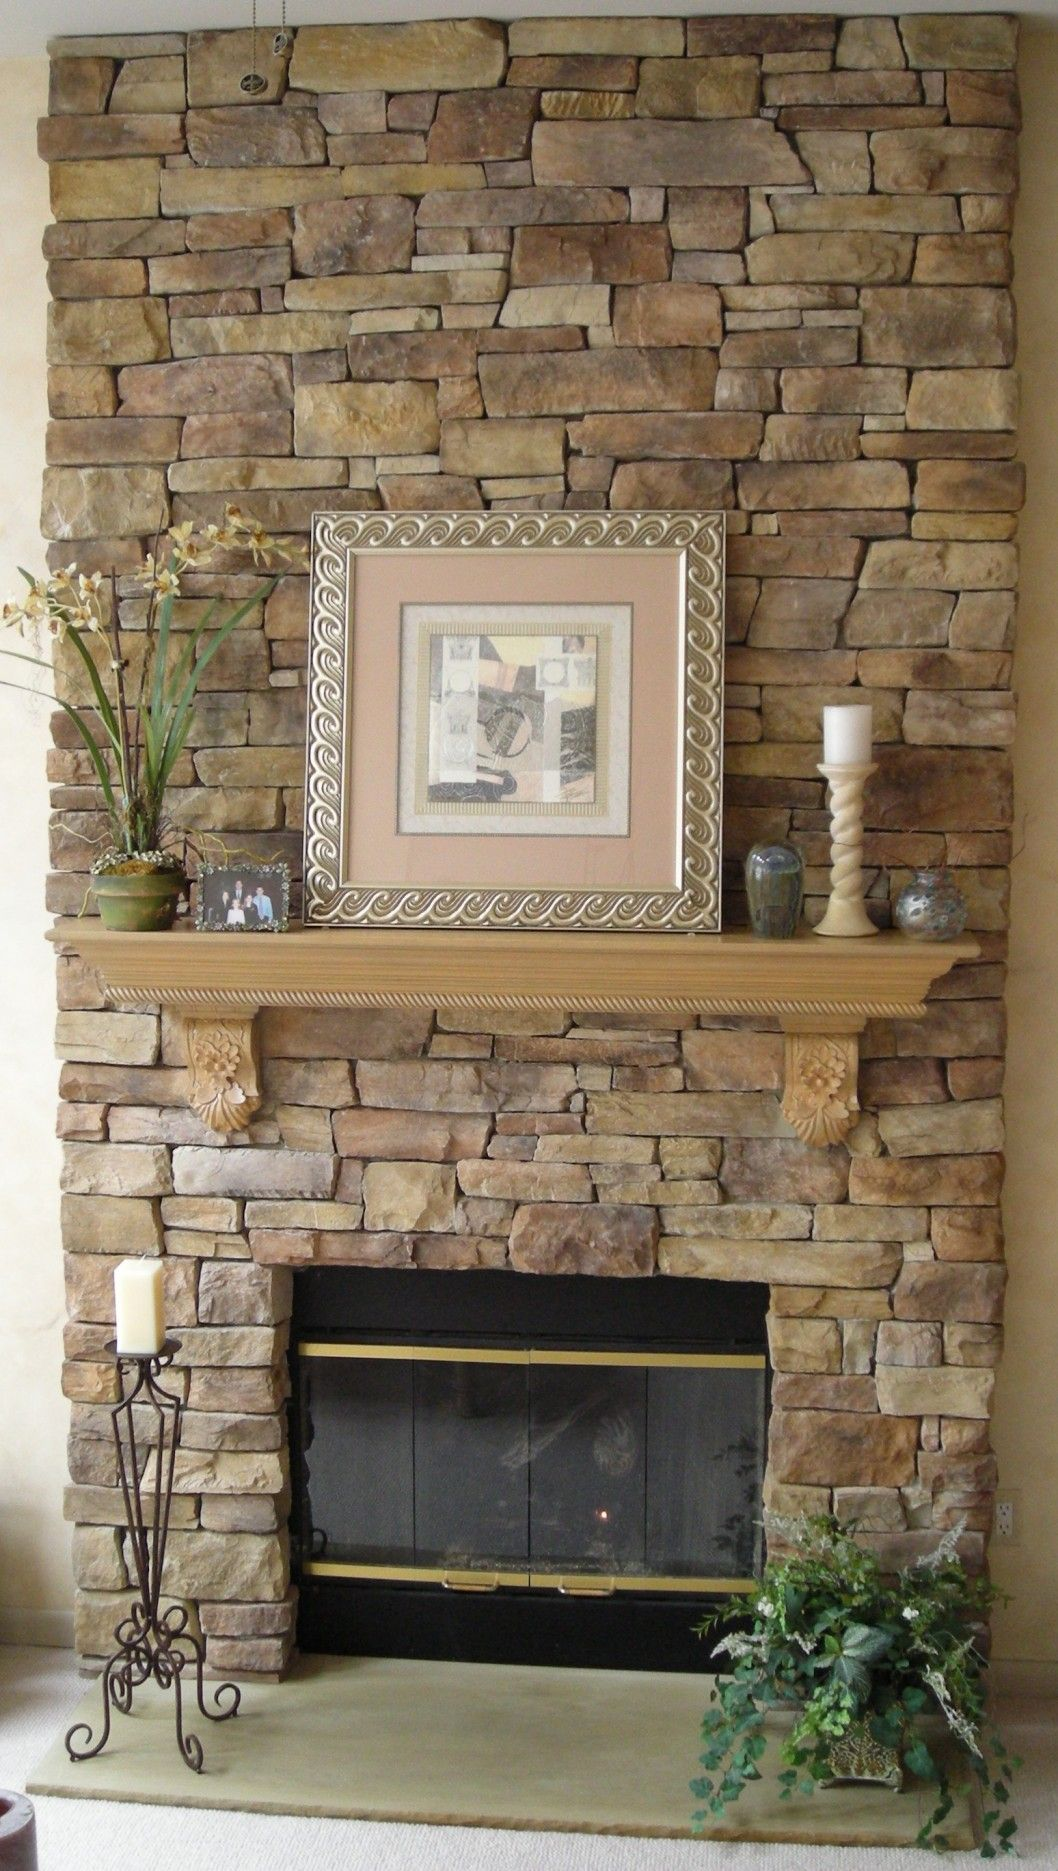 Merveilleux Fireplace Stone Wall Decoration Ideas For Modern Home Design Interior : Fireplace  Stone Ideas Brick Veneer Corner Gas Fireplace Stone Outdoor Fireplace ...